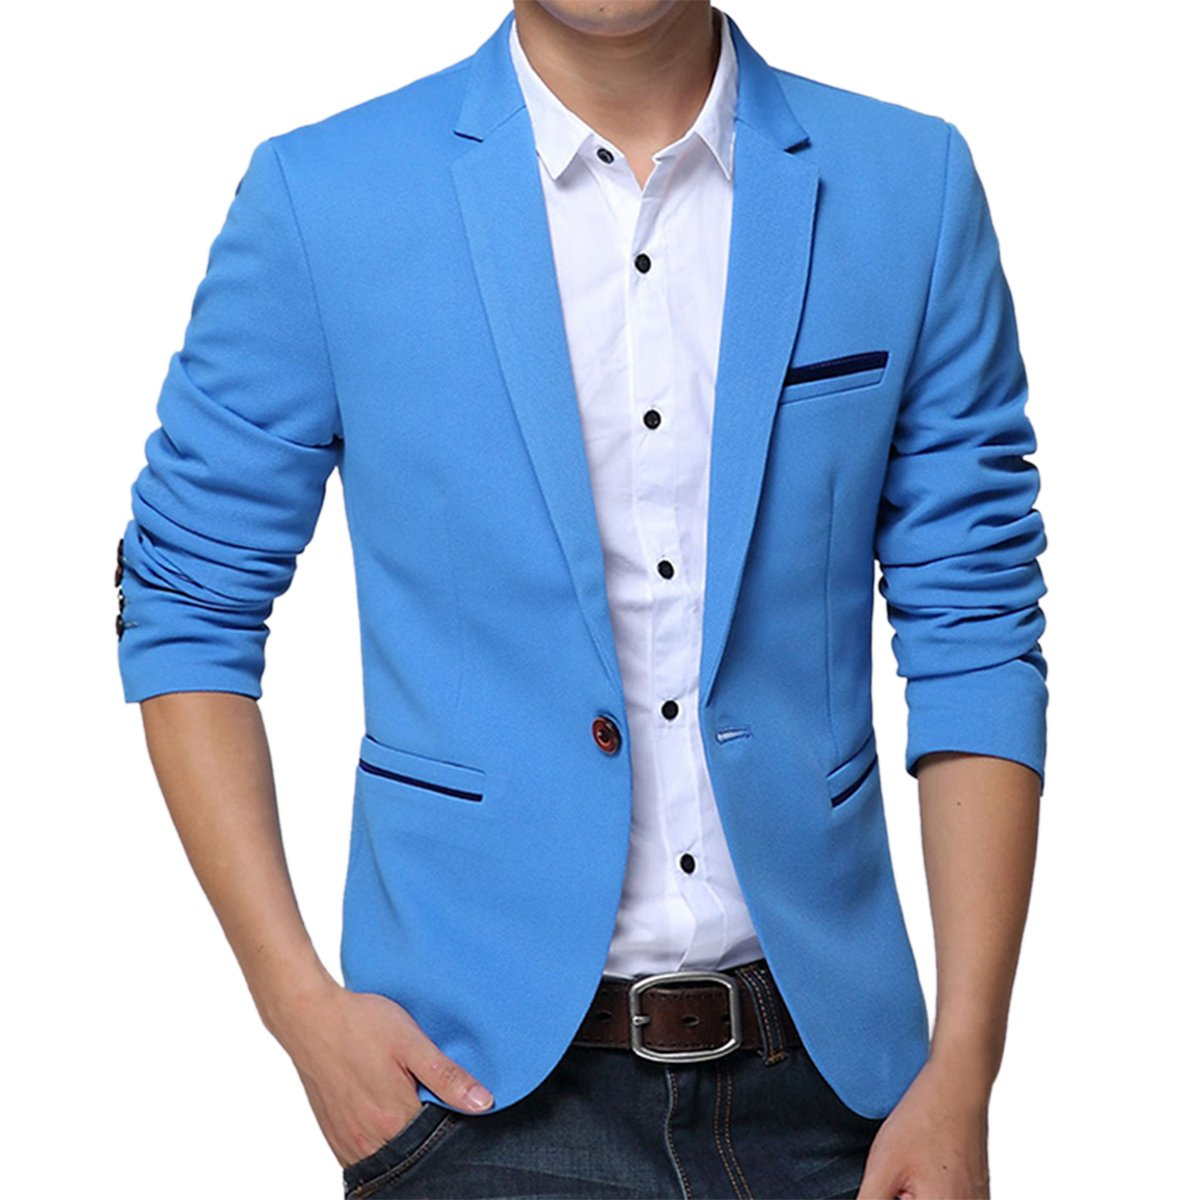 Earlish Men's Sports Jacket Lightweight One Button Slim Fit Solid Casual Blazer